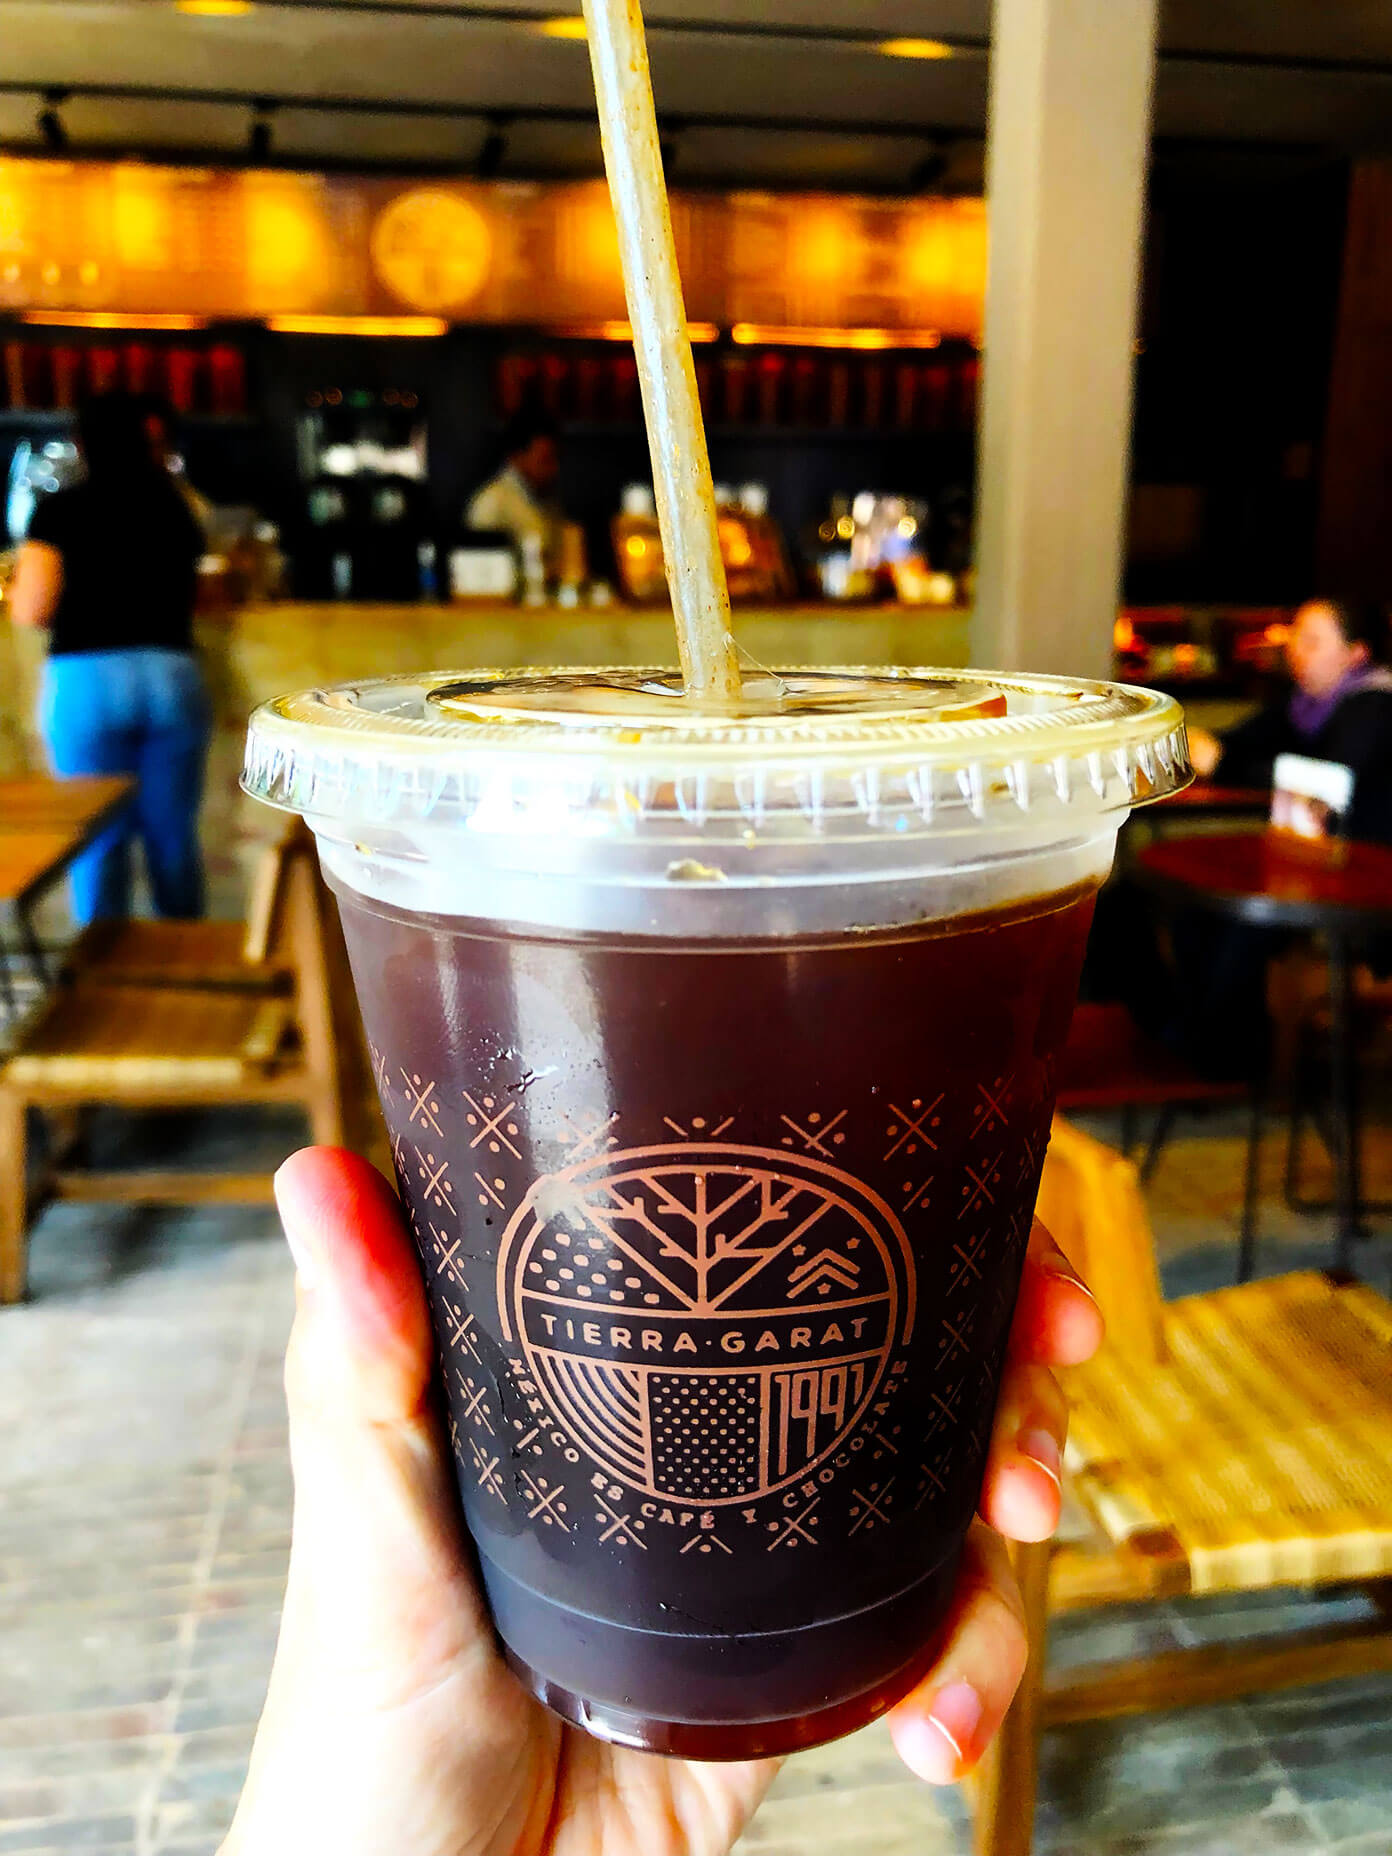 Iced Coffee at Tierra Garat in Mexico City